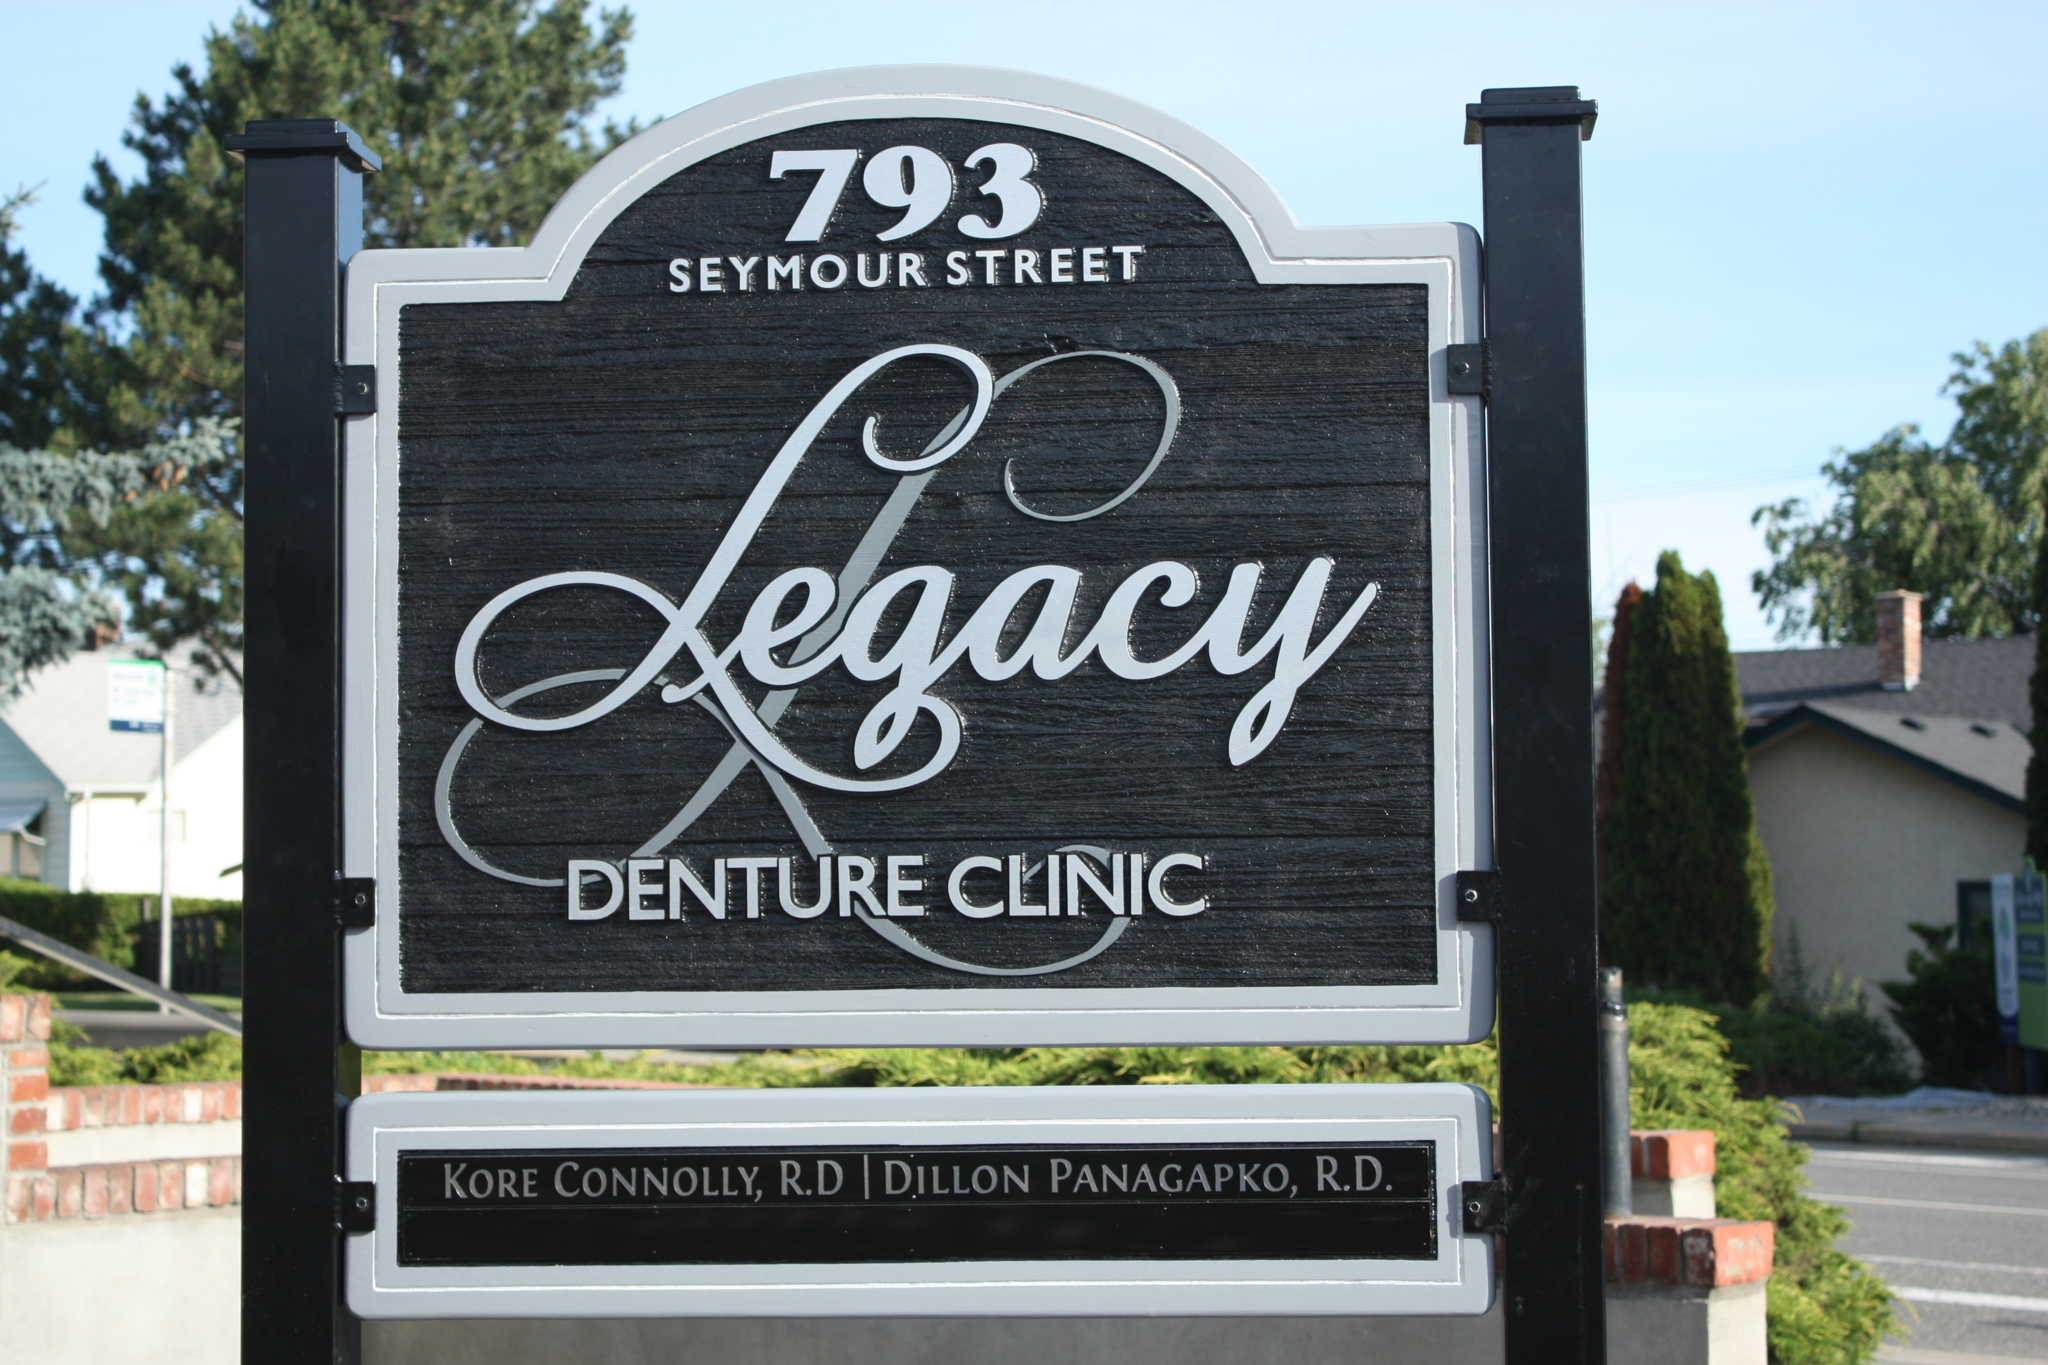 Images Legacy Denture Clinic